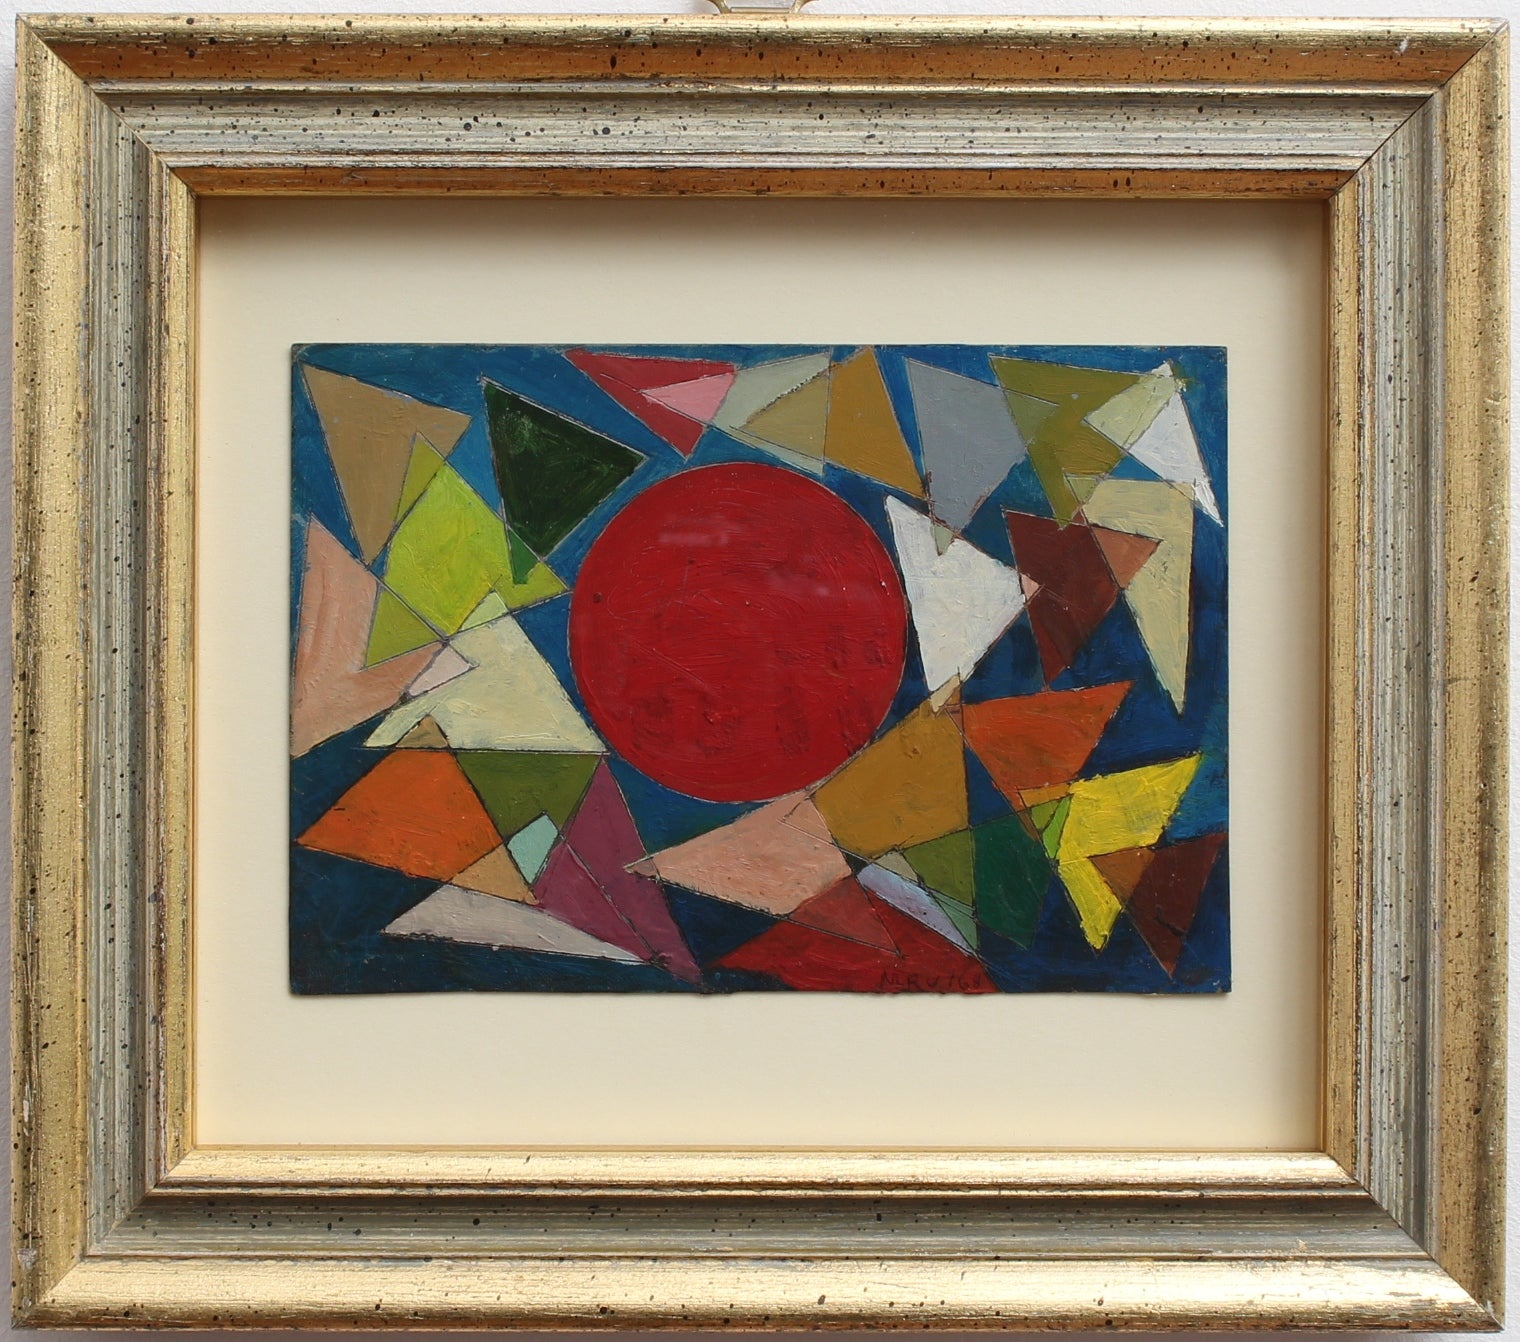 'Universe of Triangles' by Unknown Artist (c. 1950s)